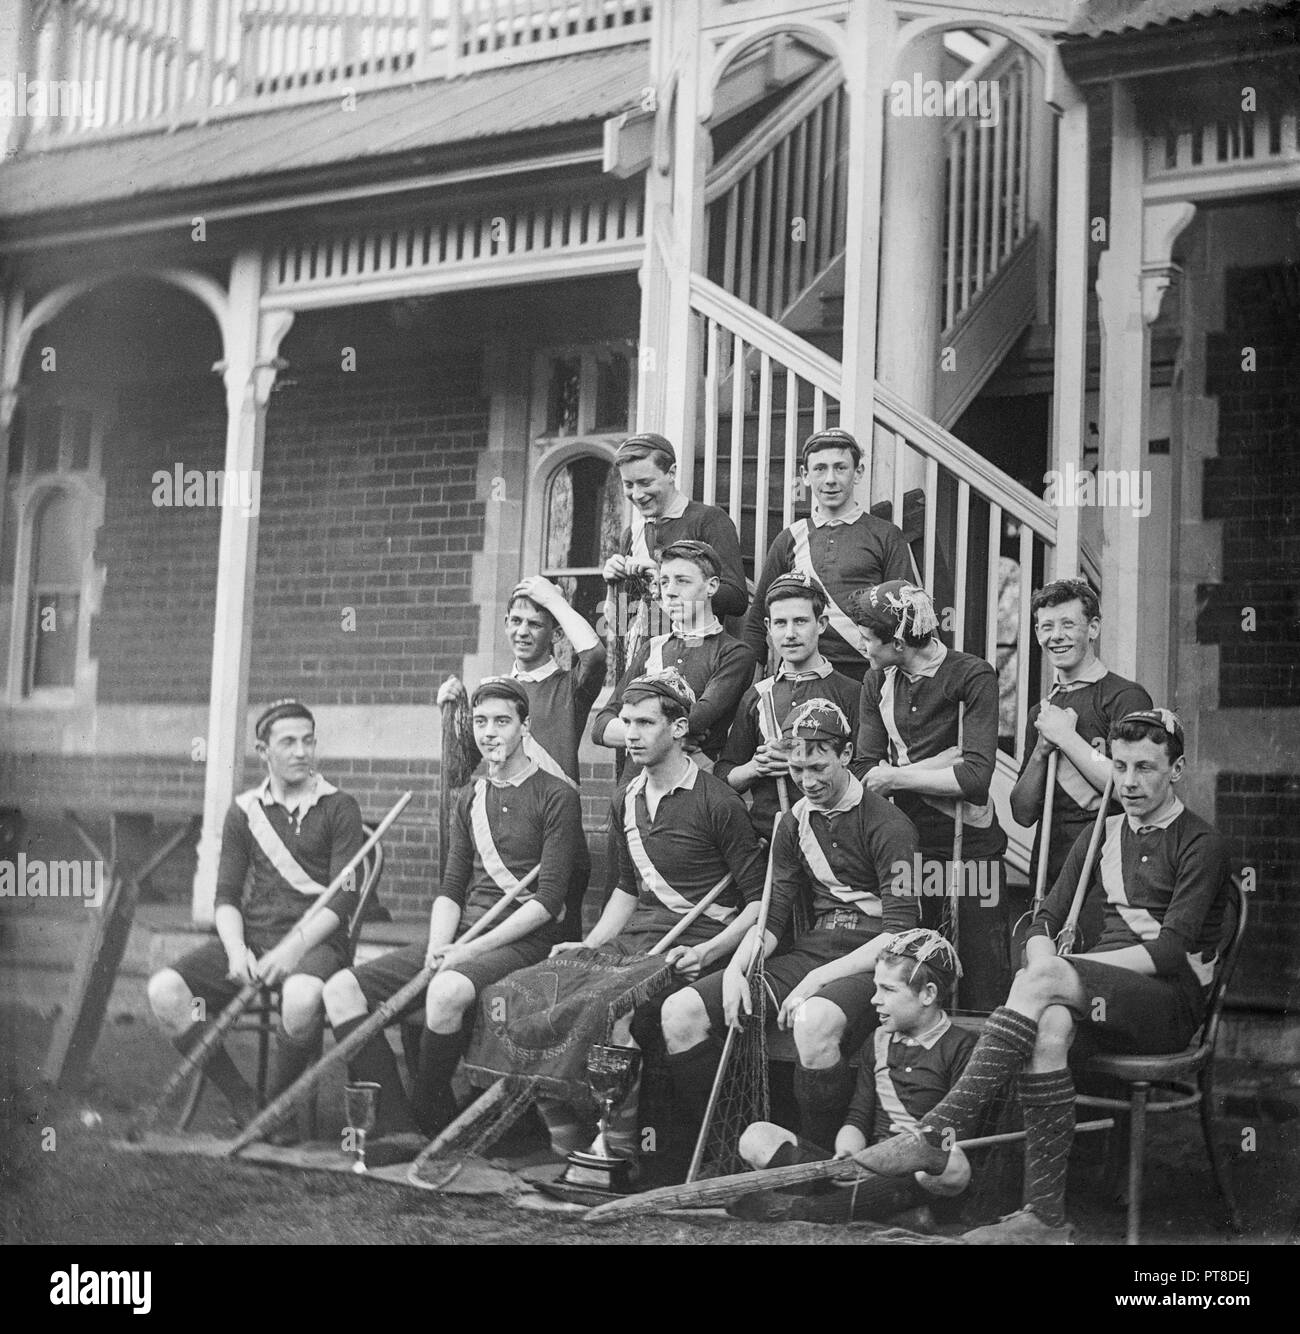 A late 19th or early 20th century black and white photograph showing a boys lacrosse team displaying two trophies